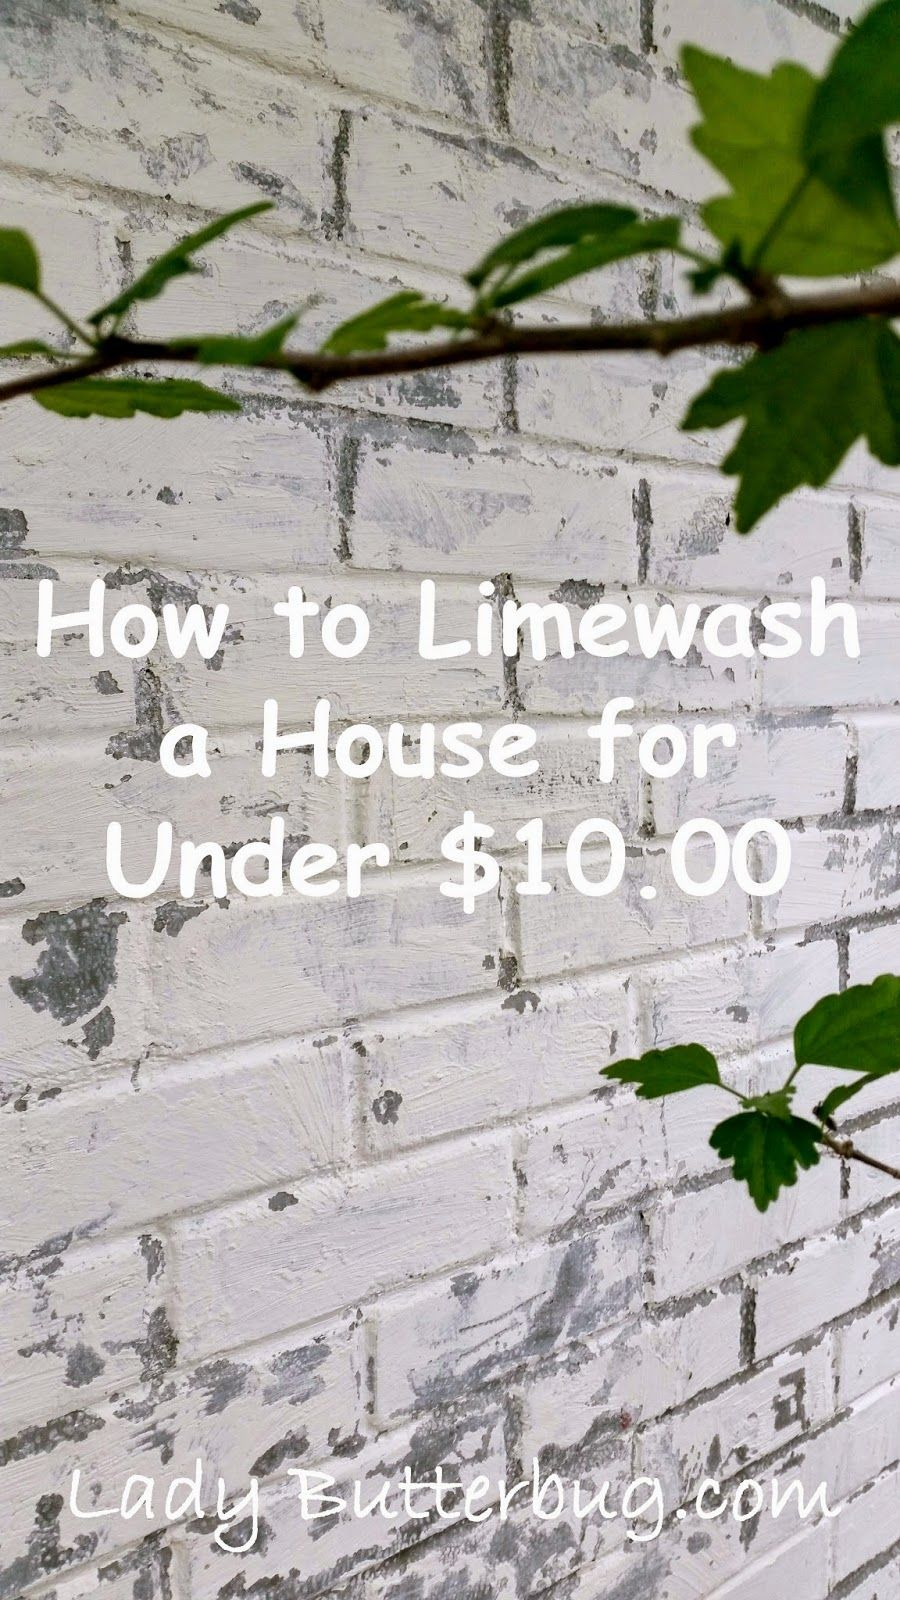 Lime Wash Brick Exterior Exterior Painting Interesting How To Limewash Your House For Less Than $10.00 At Lady Butterbug . Design Decoration